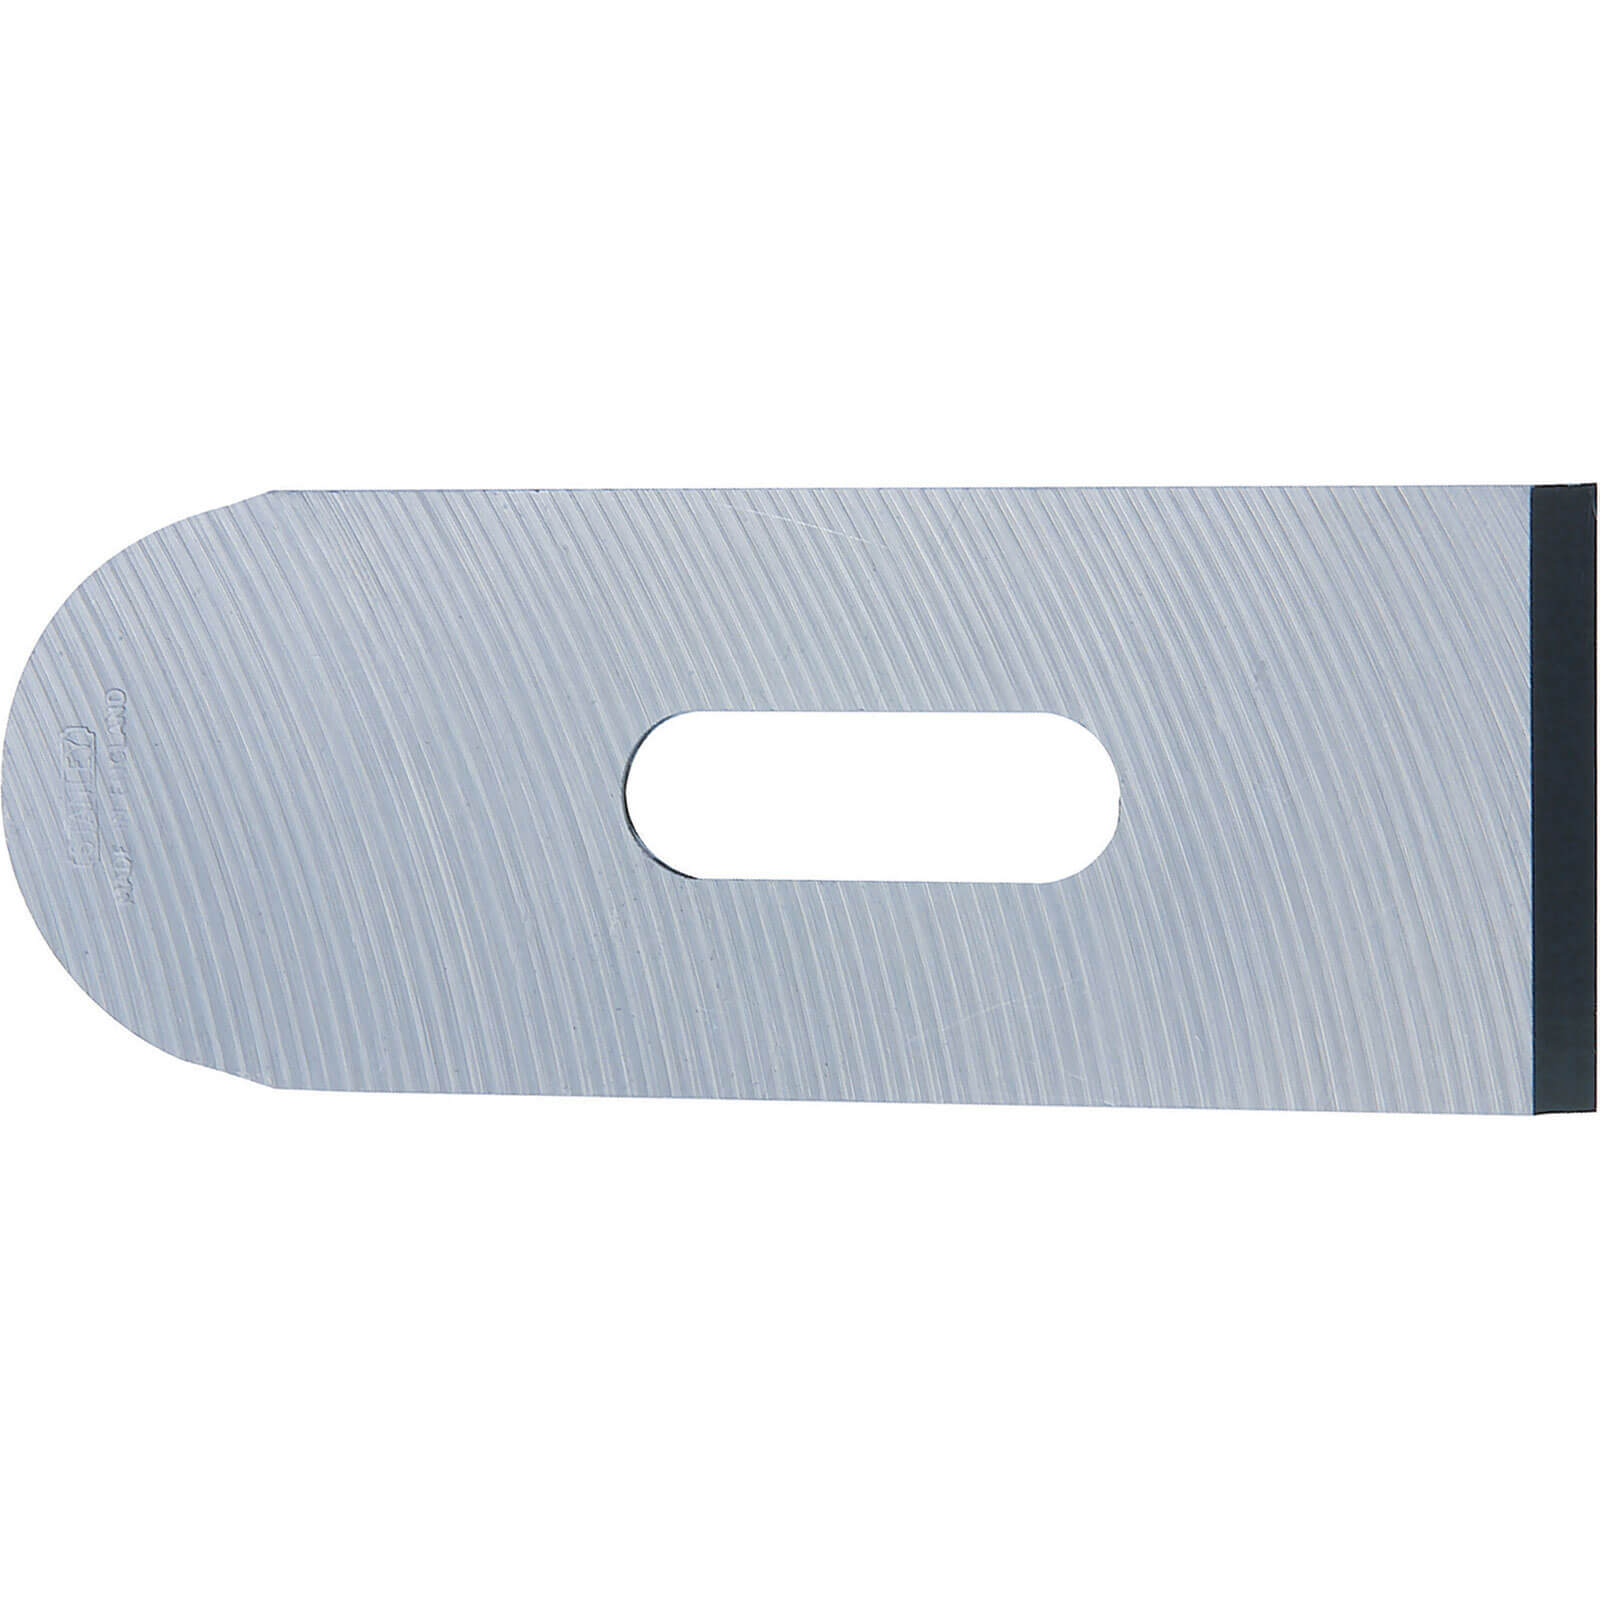 Stanley Iron For 110/110A&130 Planes 0 12 330